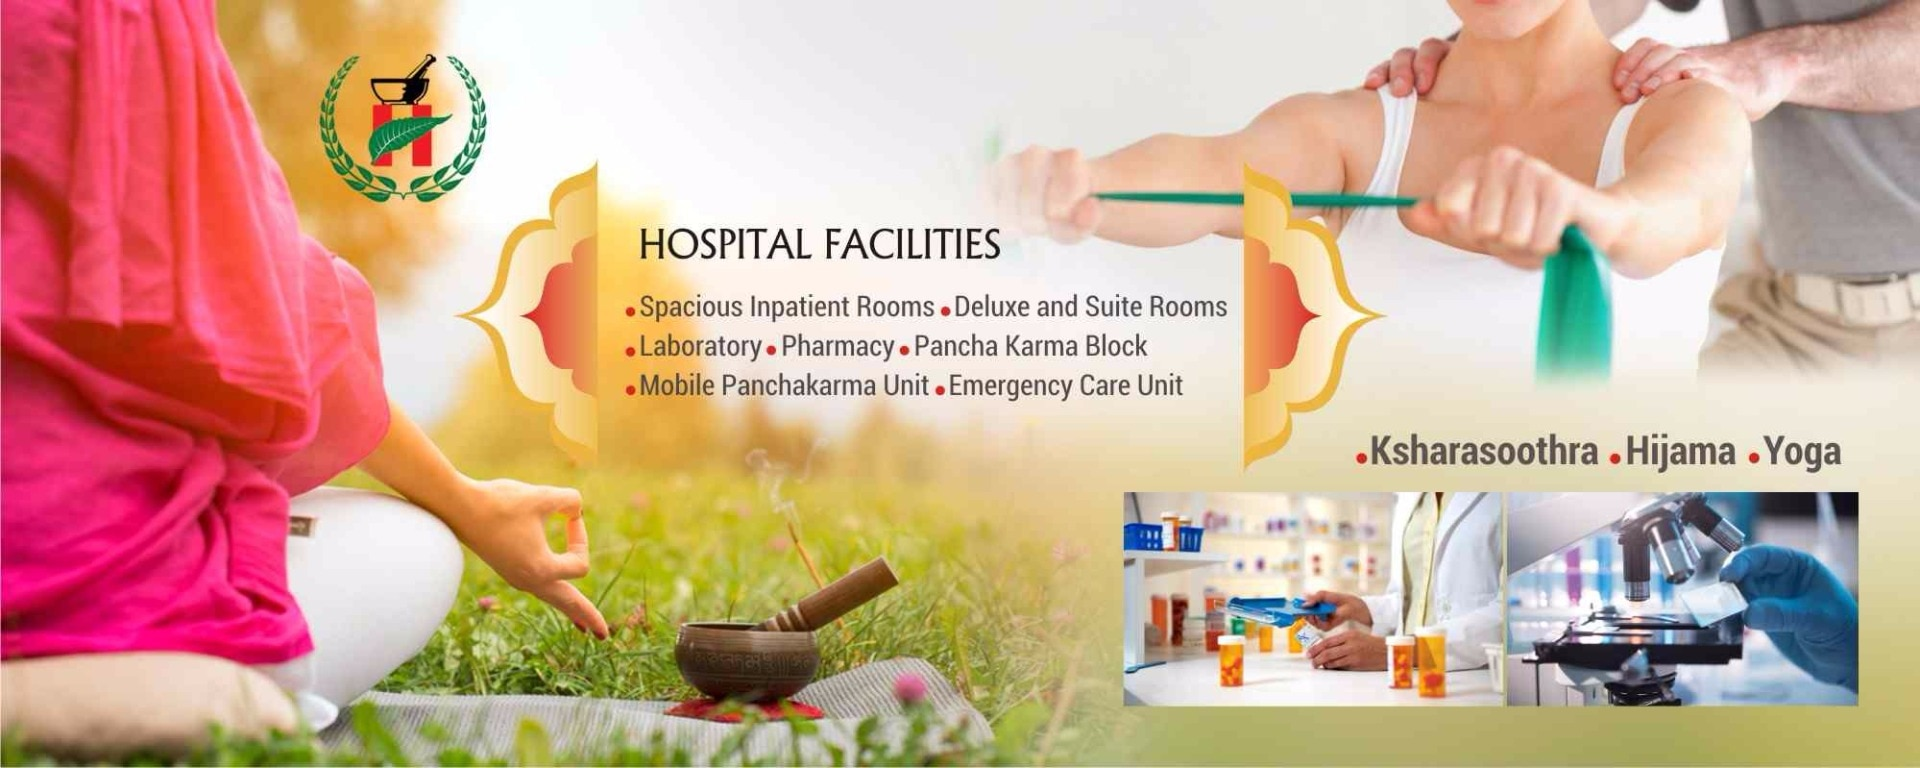 Dr Hassan Ayurveda Brain & Spine Super Speciality Hospital    9495943366